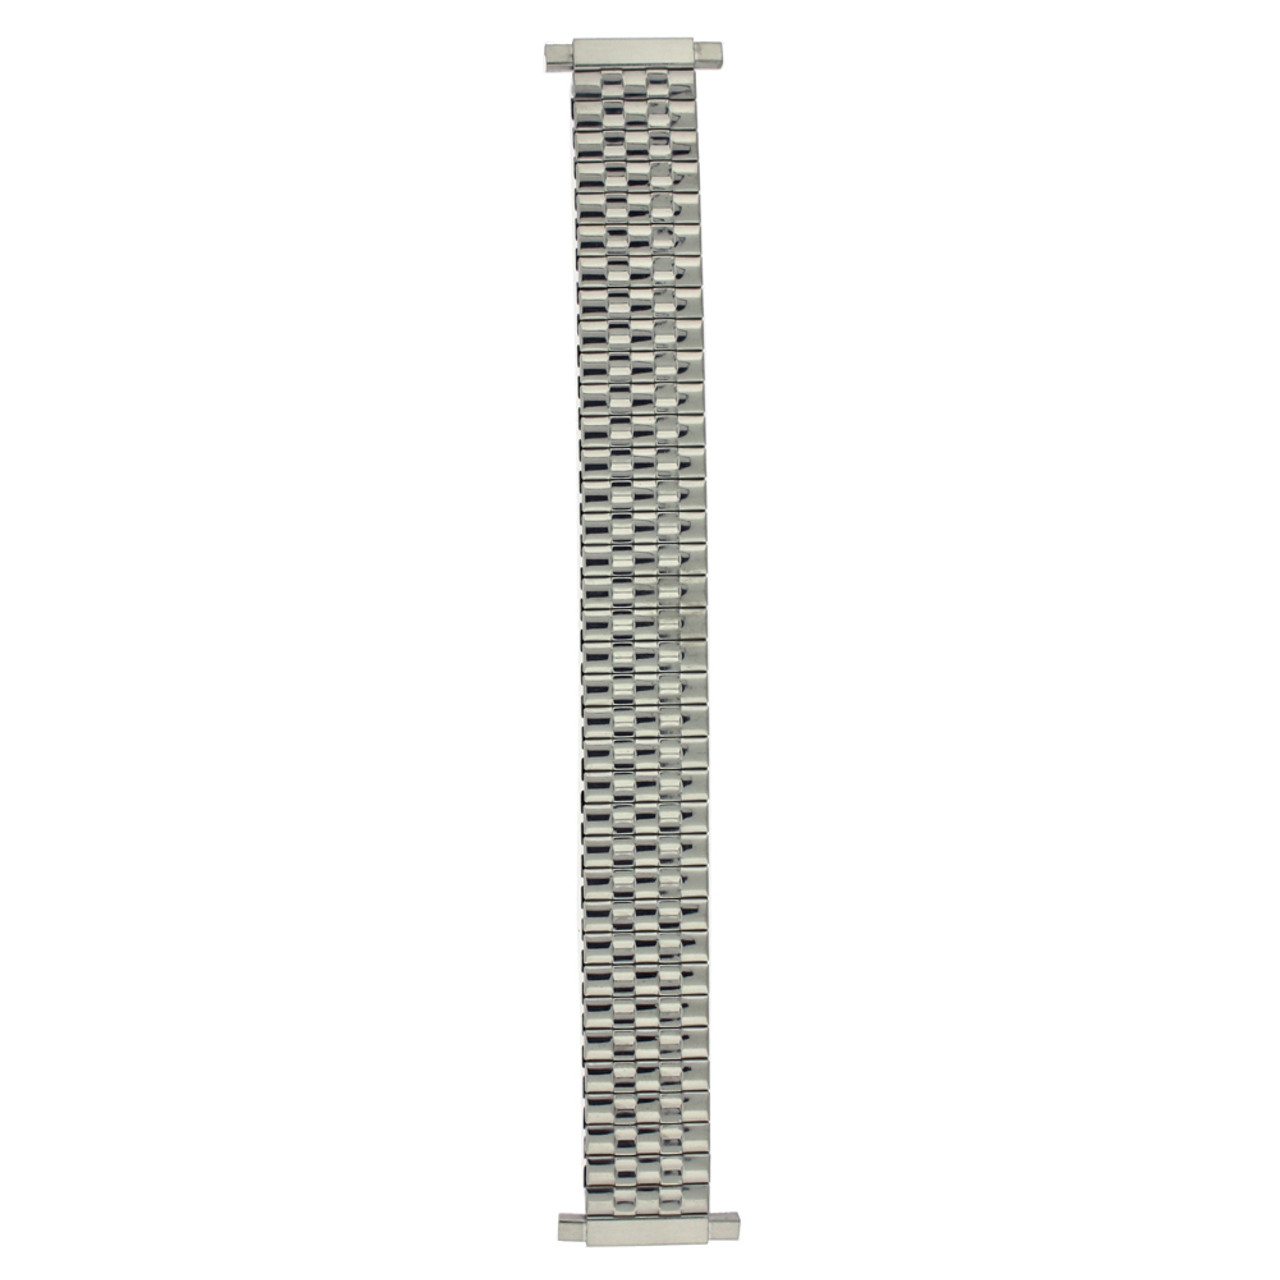 Watch Band Expansion Metal Stretch Stainless Steel fits 16mm to 22mm - Main